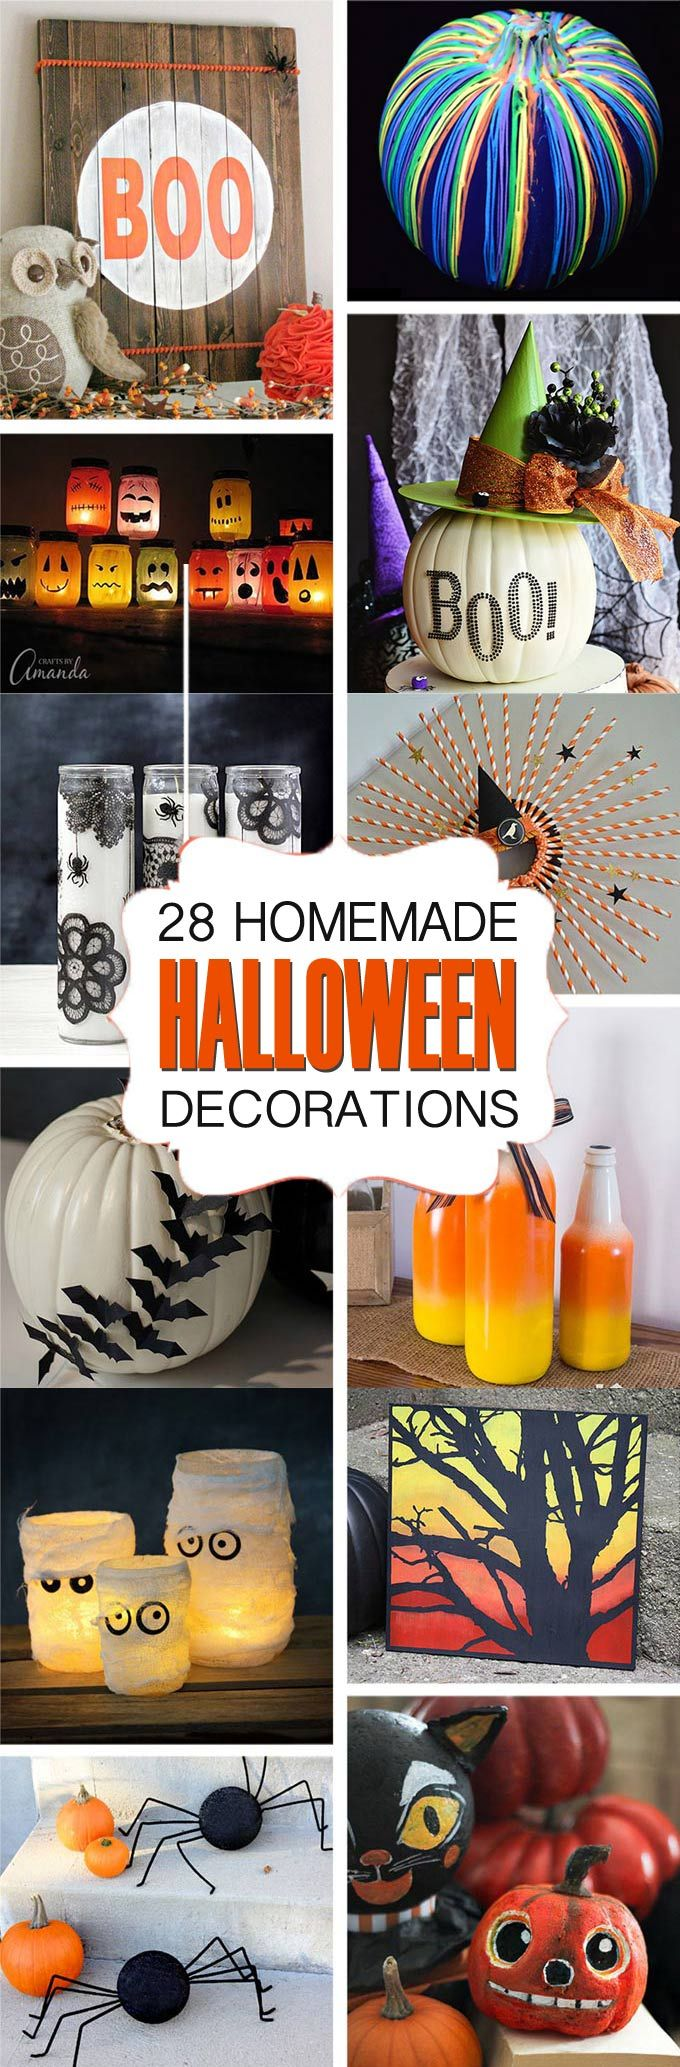 short coats for women 28 Homemade Halloween Decorations   if you are looking for crafty ways to decorate for Halloween that won  39 t cost you a fortune  this list of DIY ideas is full of Halloween crafts you can make yourself